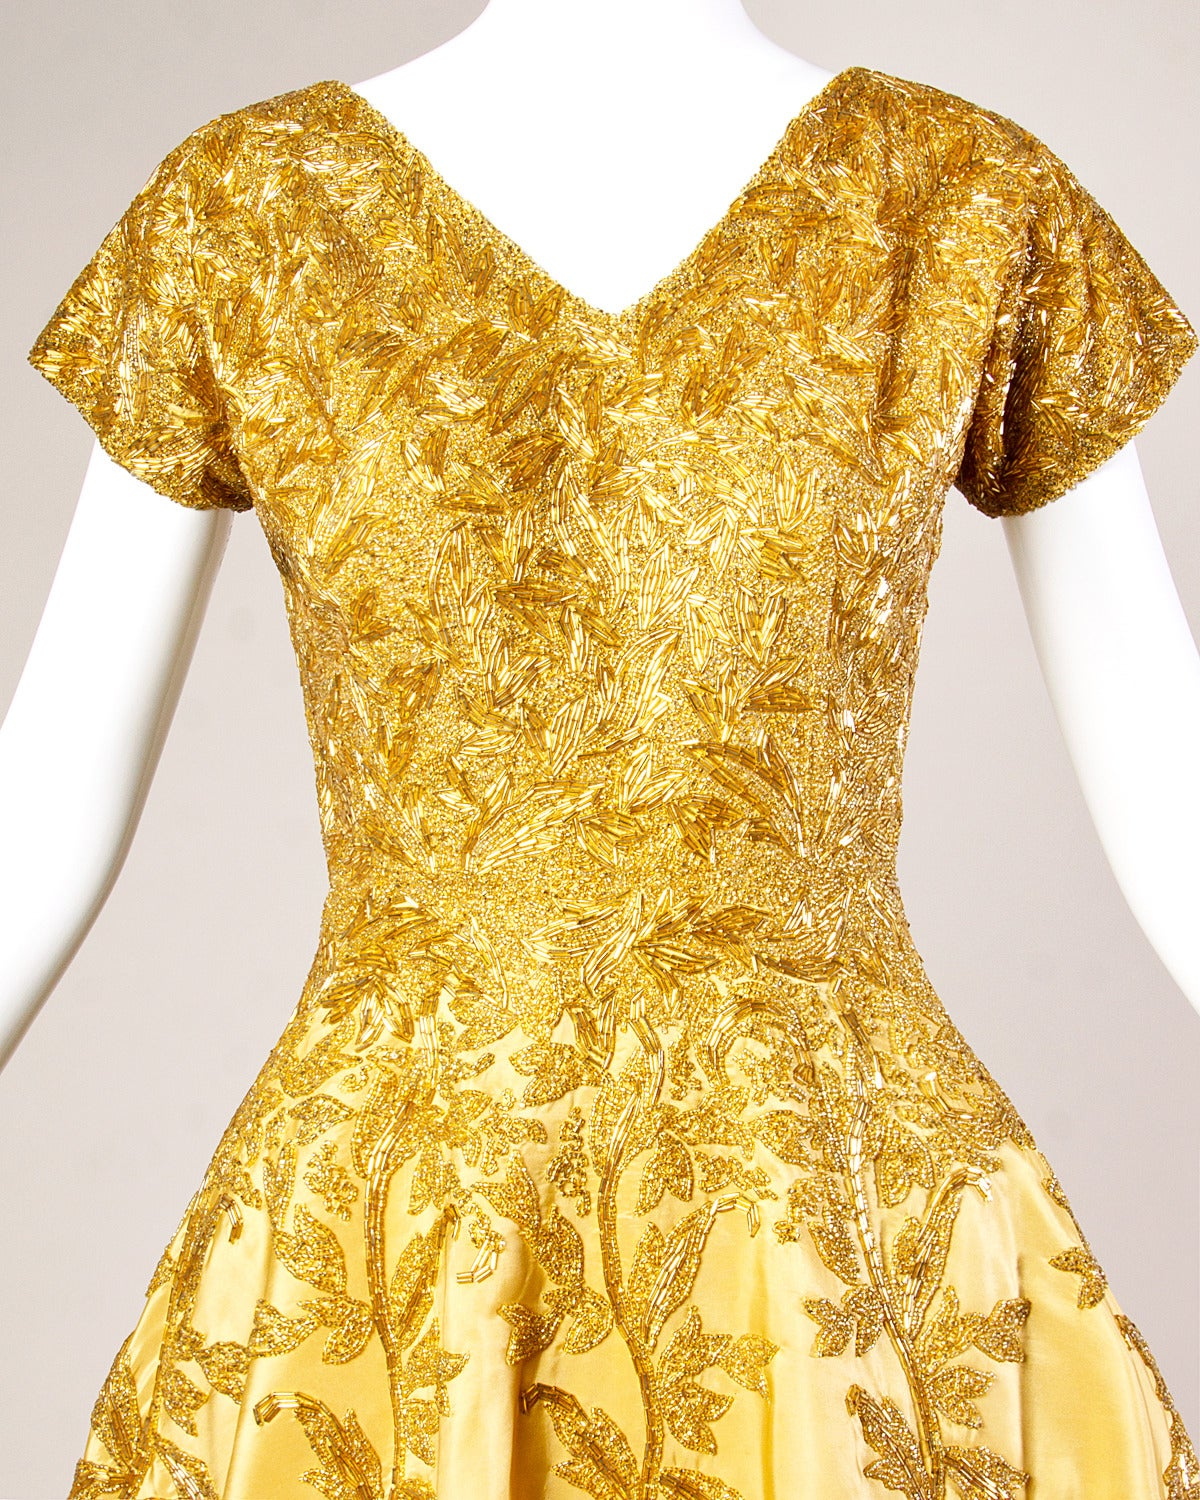 Absolutely one of the most stunning dresses we have ever laid eyes on! This dress is just incredible. Gorgeous gold-yellow silk cocktail dress with heavy hand beaded design. Full sweep, short sleeves and V-neck. 